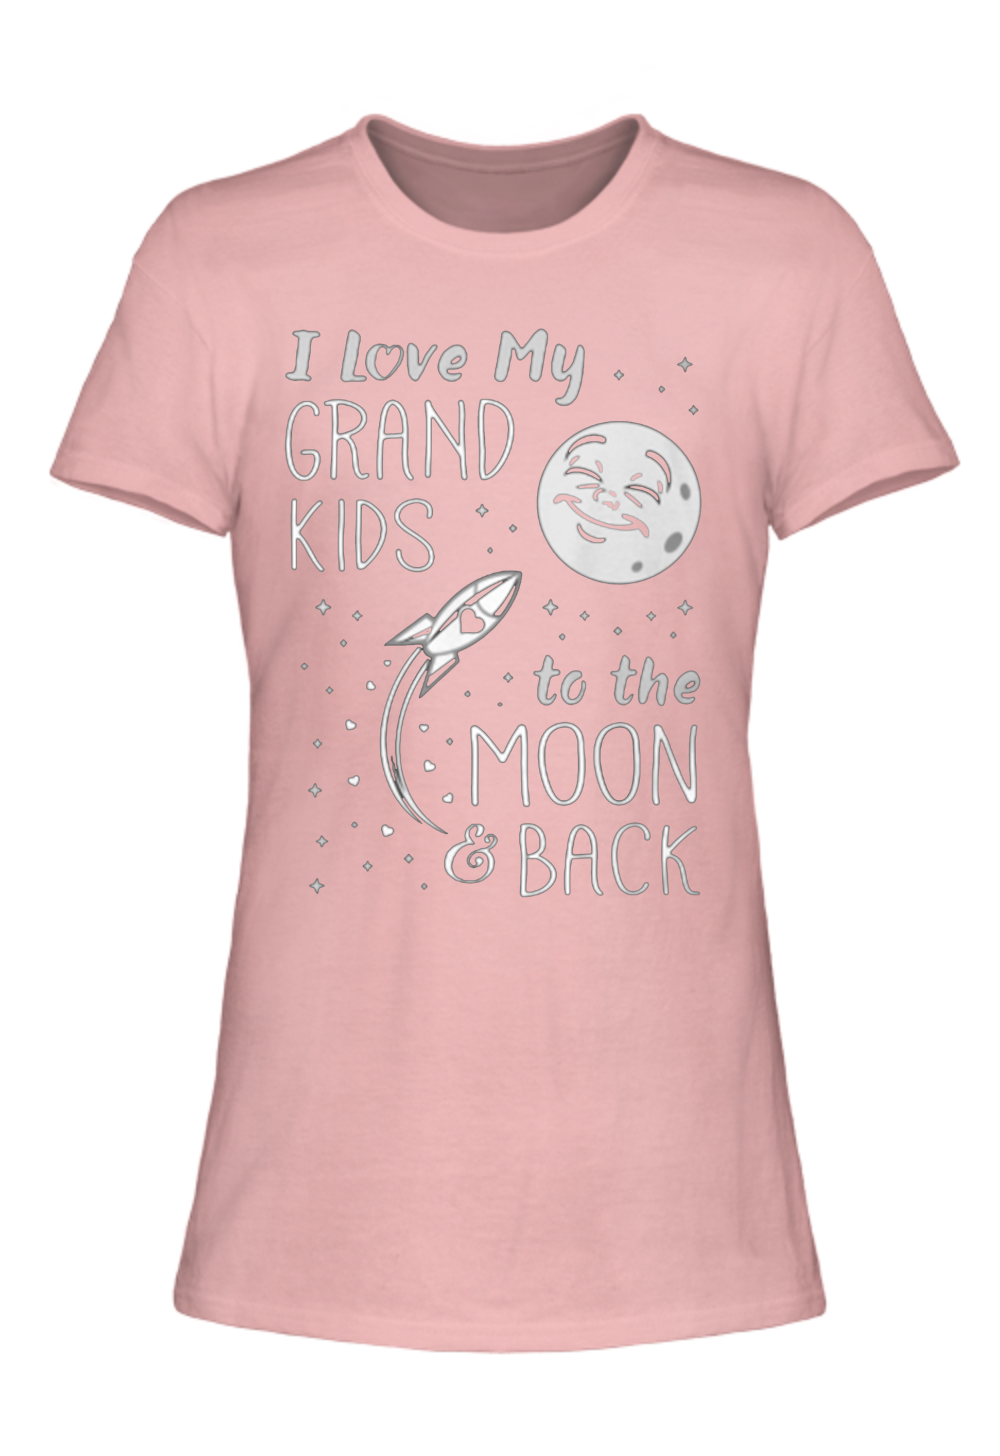 I Love My Grand Kids To The Moon & Back Ladies Tee [Runs Small]